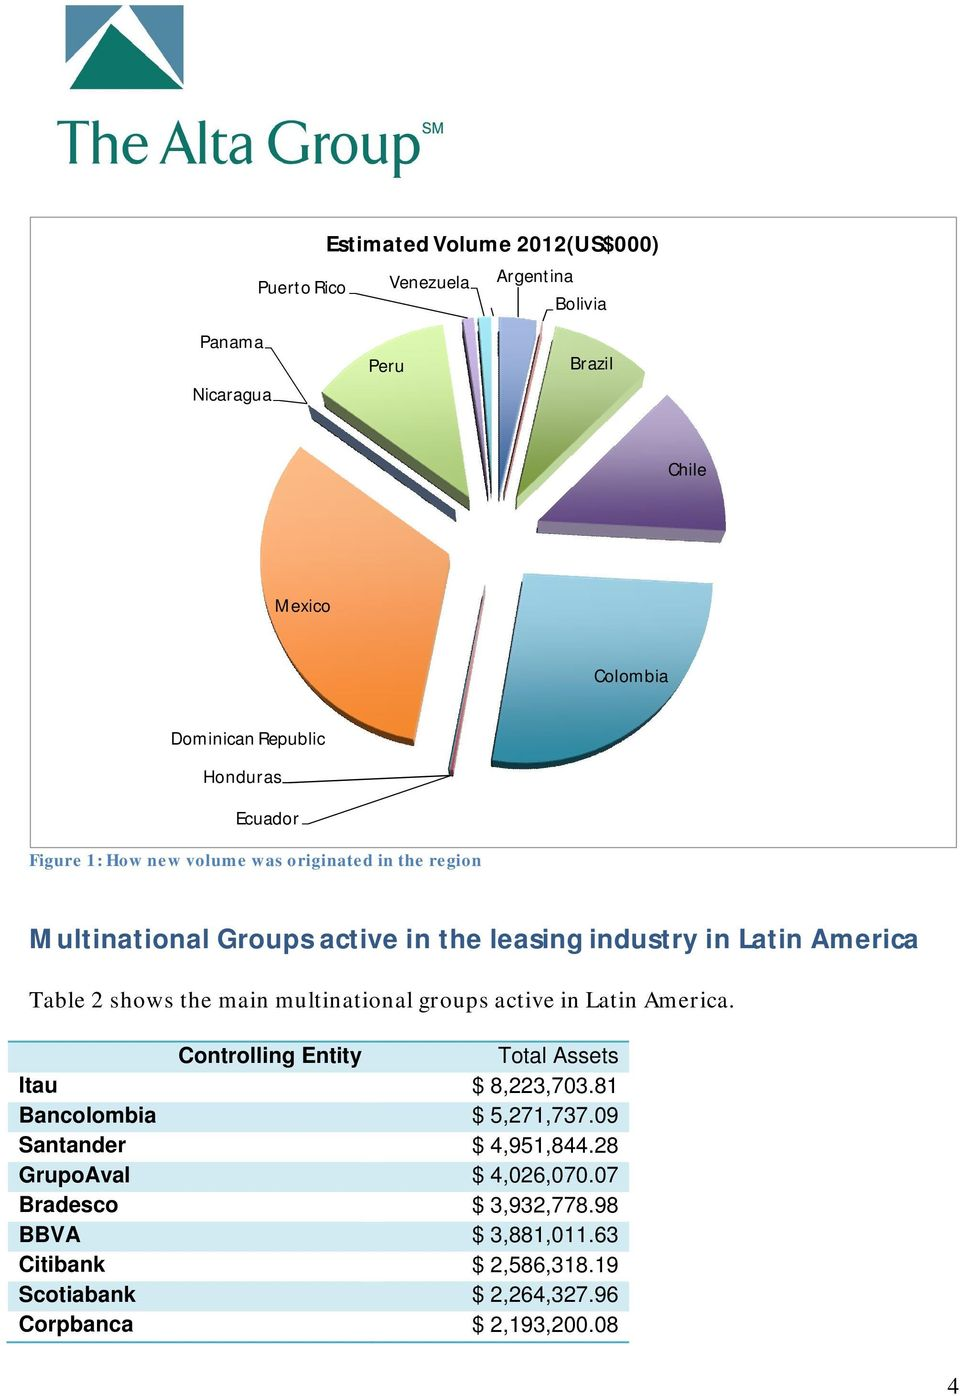 main multinational groups active in Latin America. Controlling Entity Total Assets Itau $ 8,223,703.81 Bancolombia $ 5,271,737.